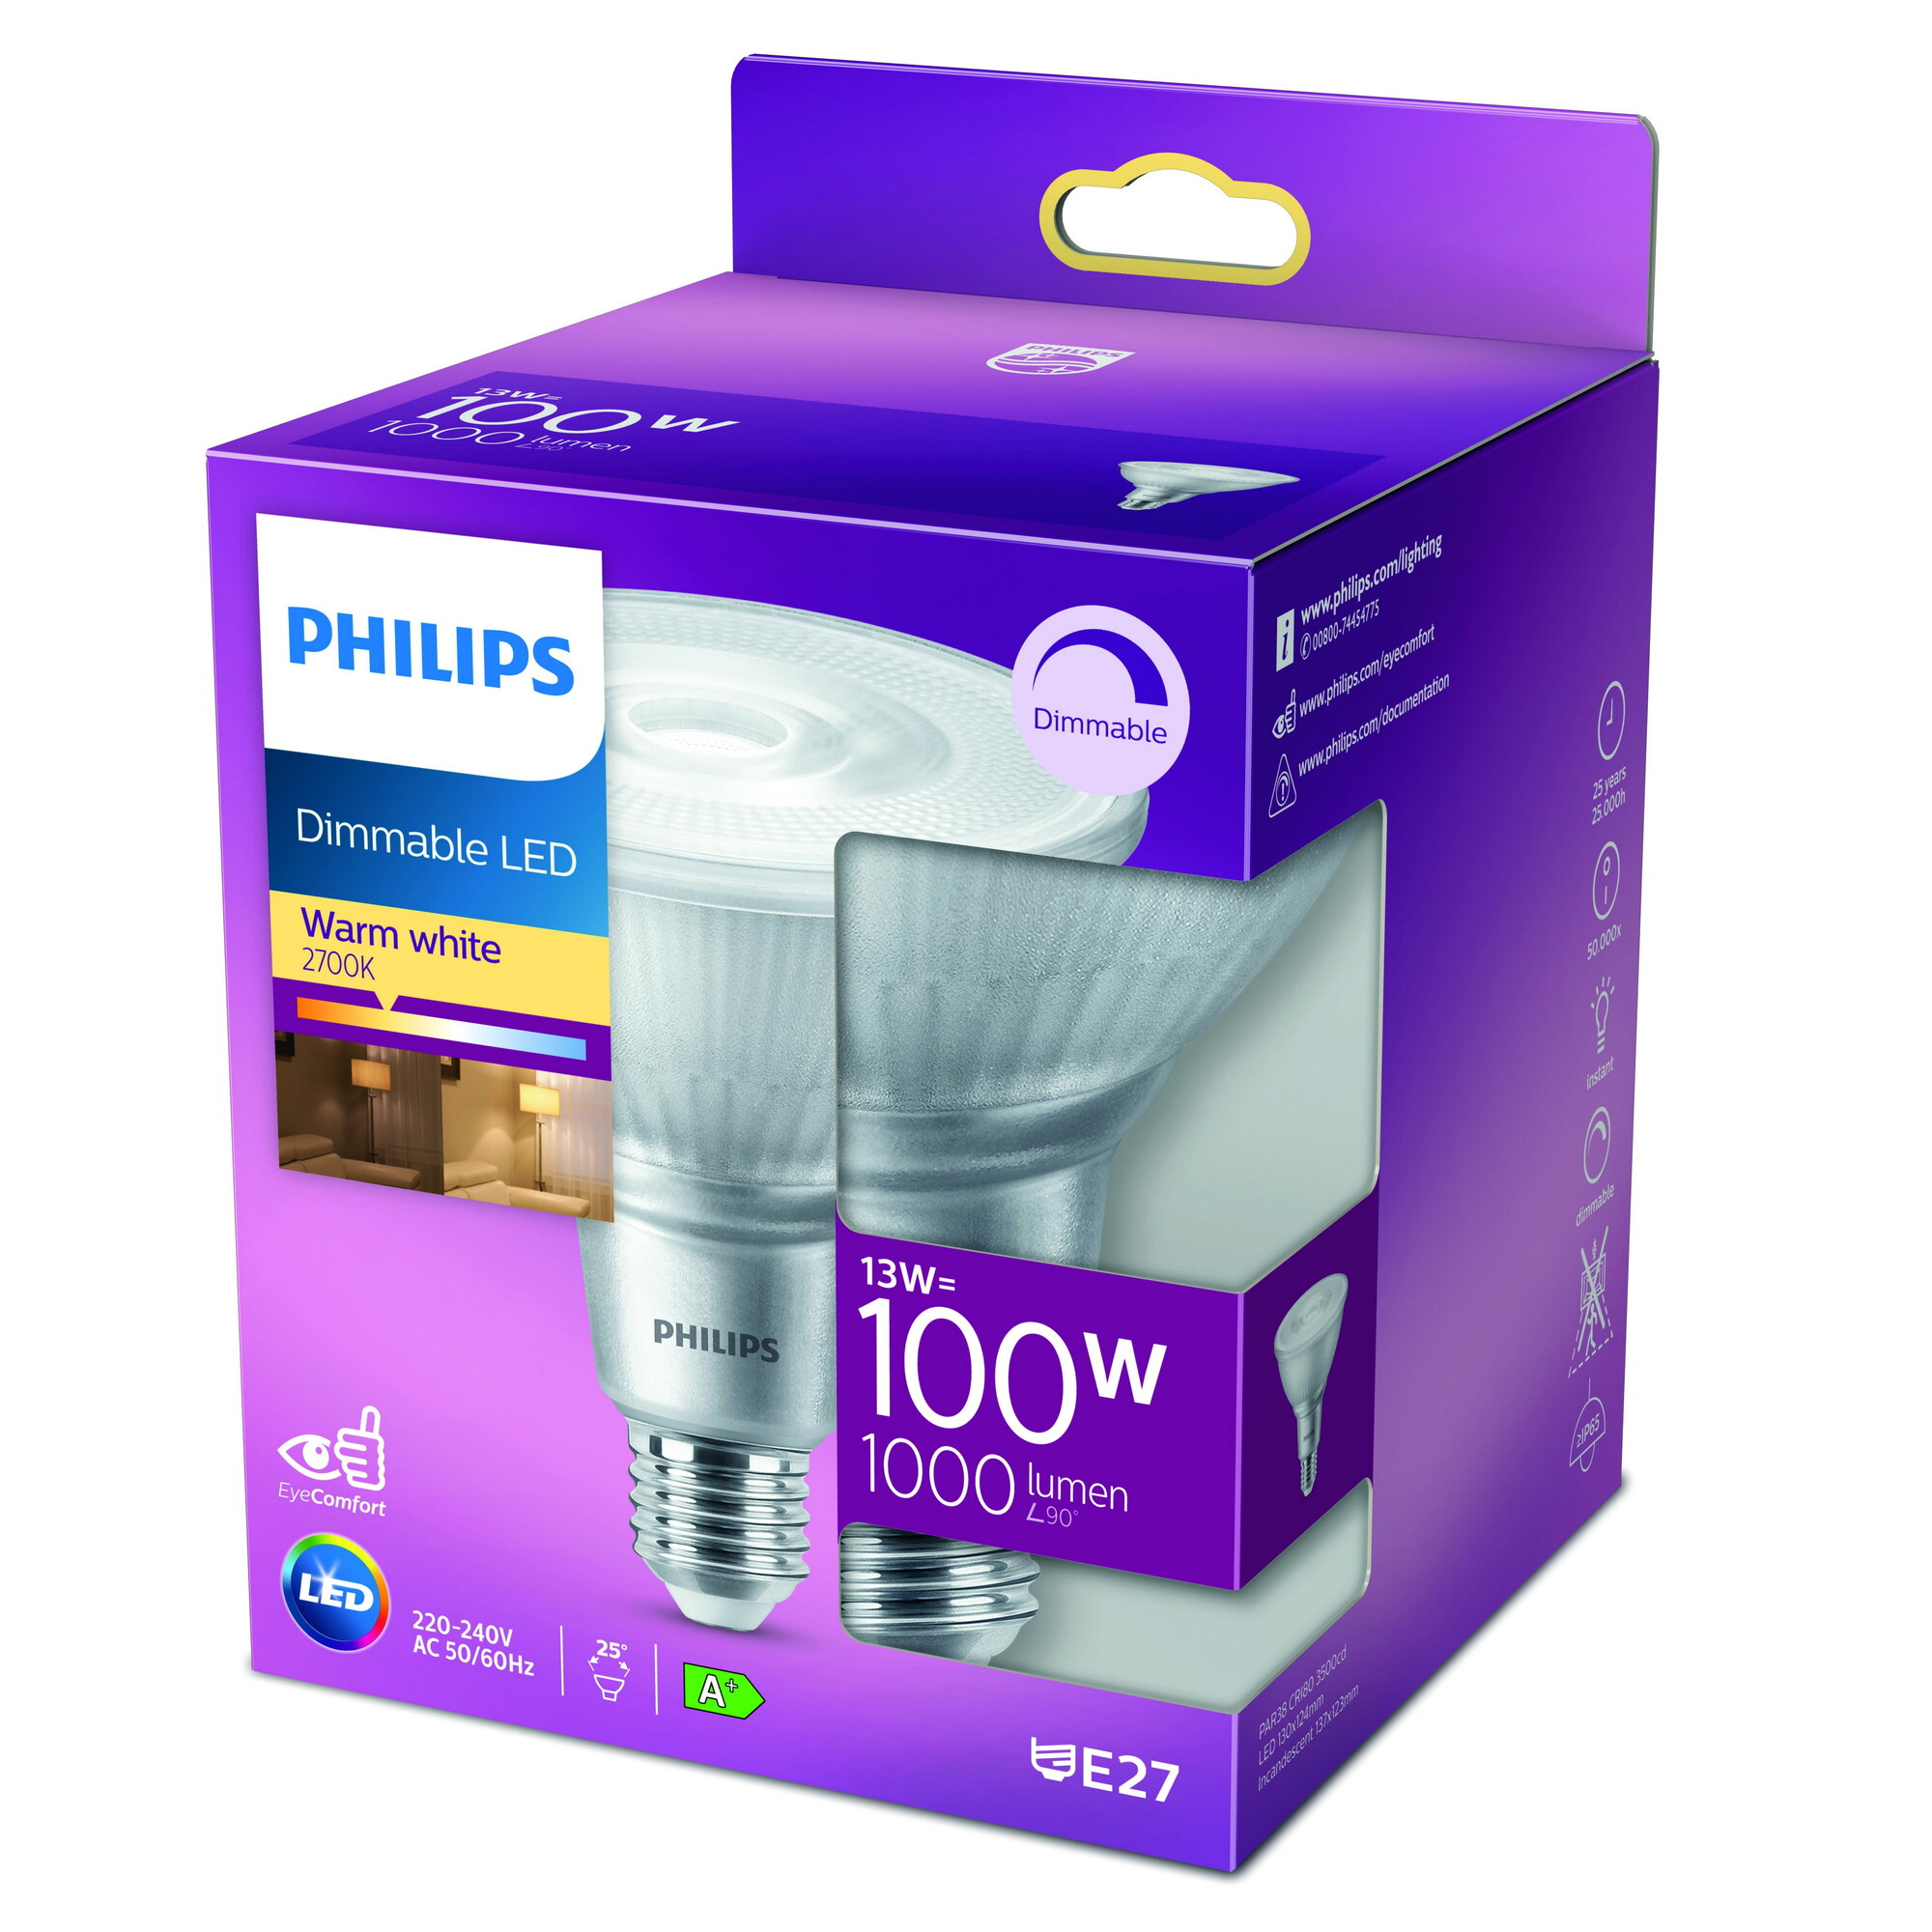 Philips LED classic E27 13W 1000lm 2700K Reflector Transparant